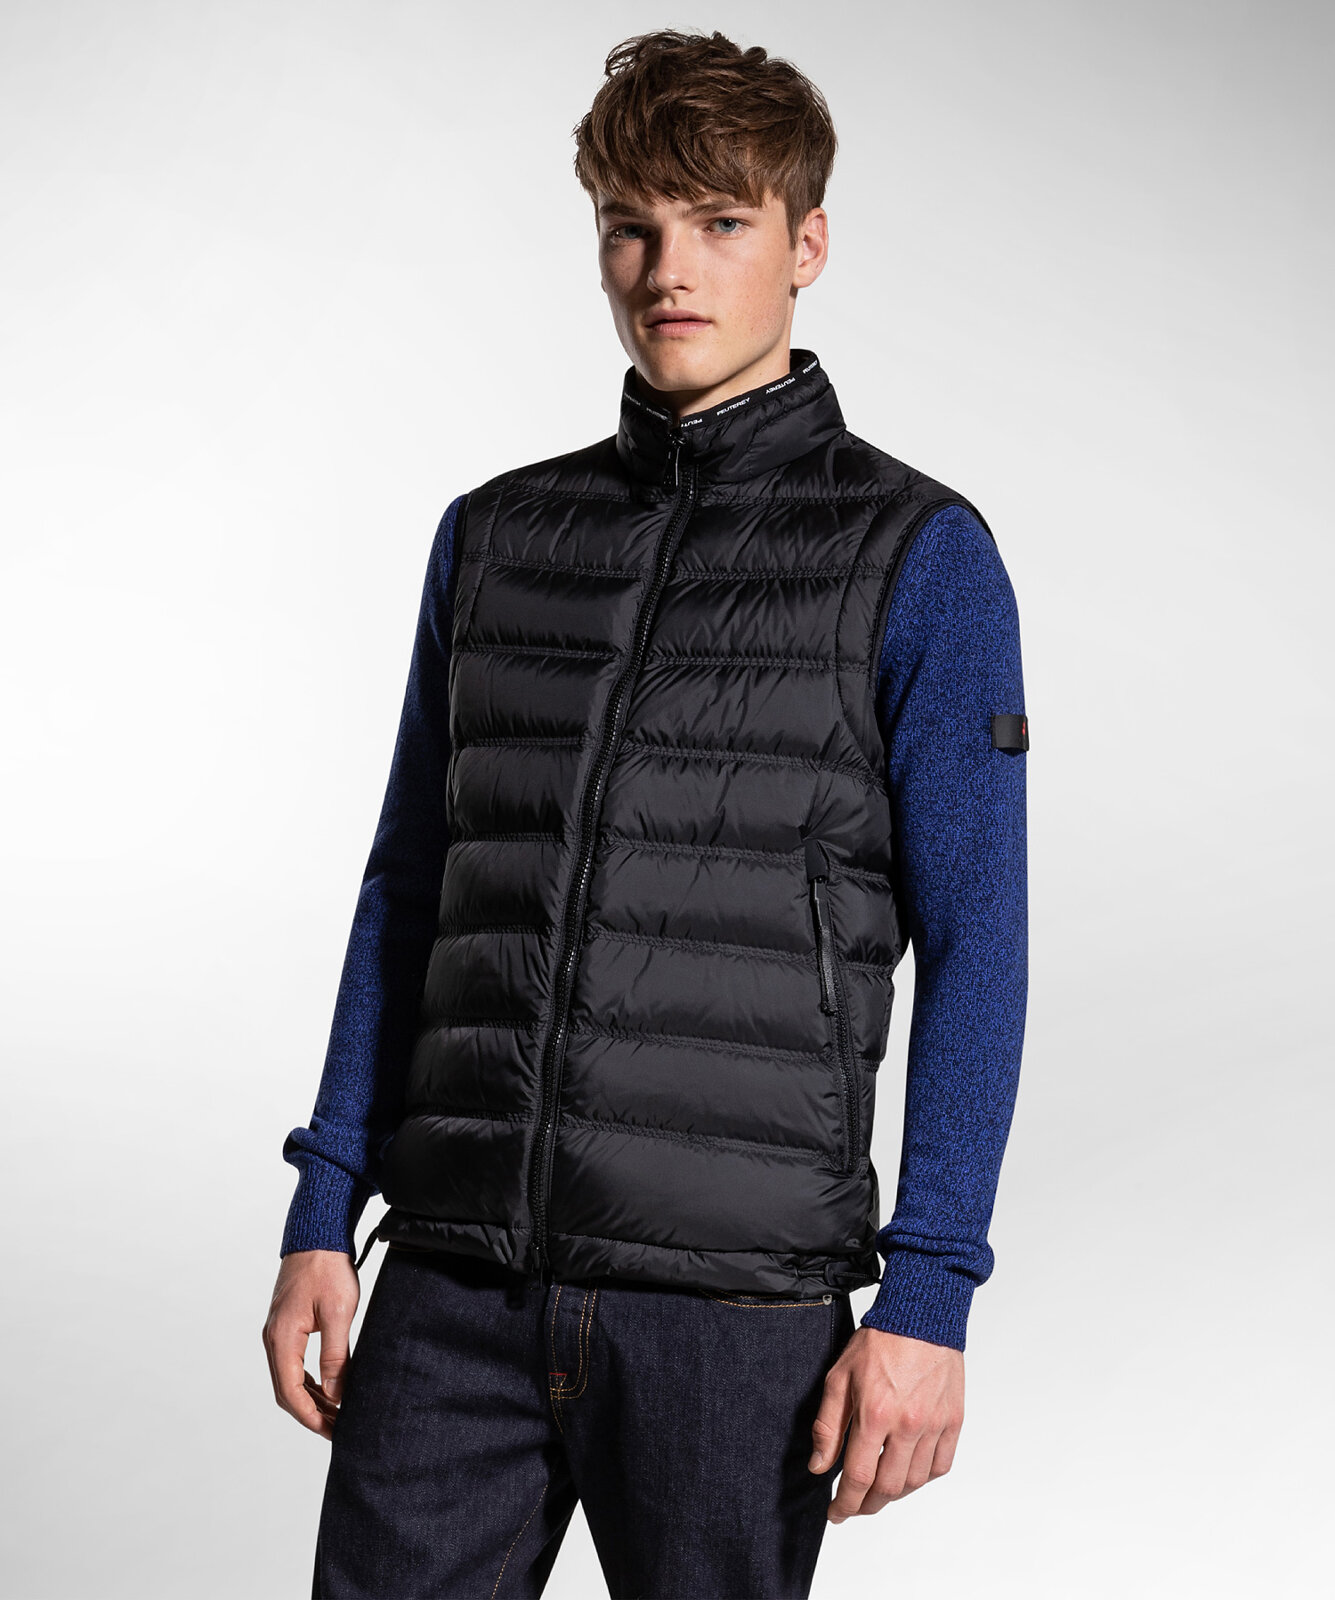 Sleeveless Down Jacket - Peuterey